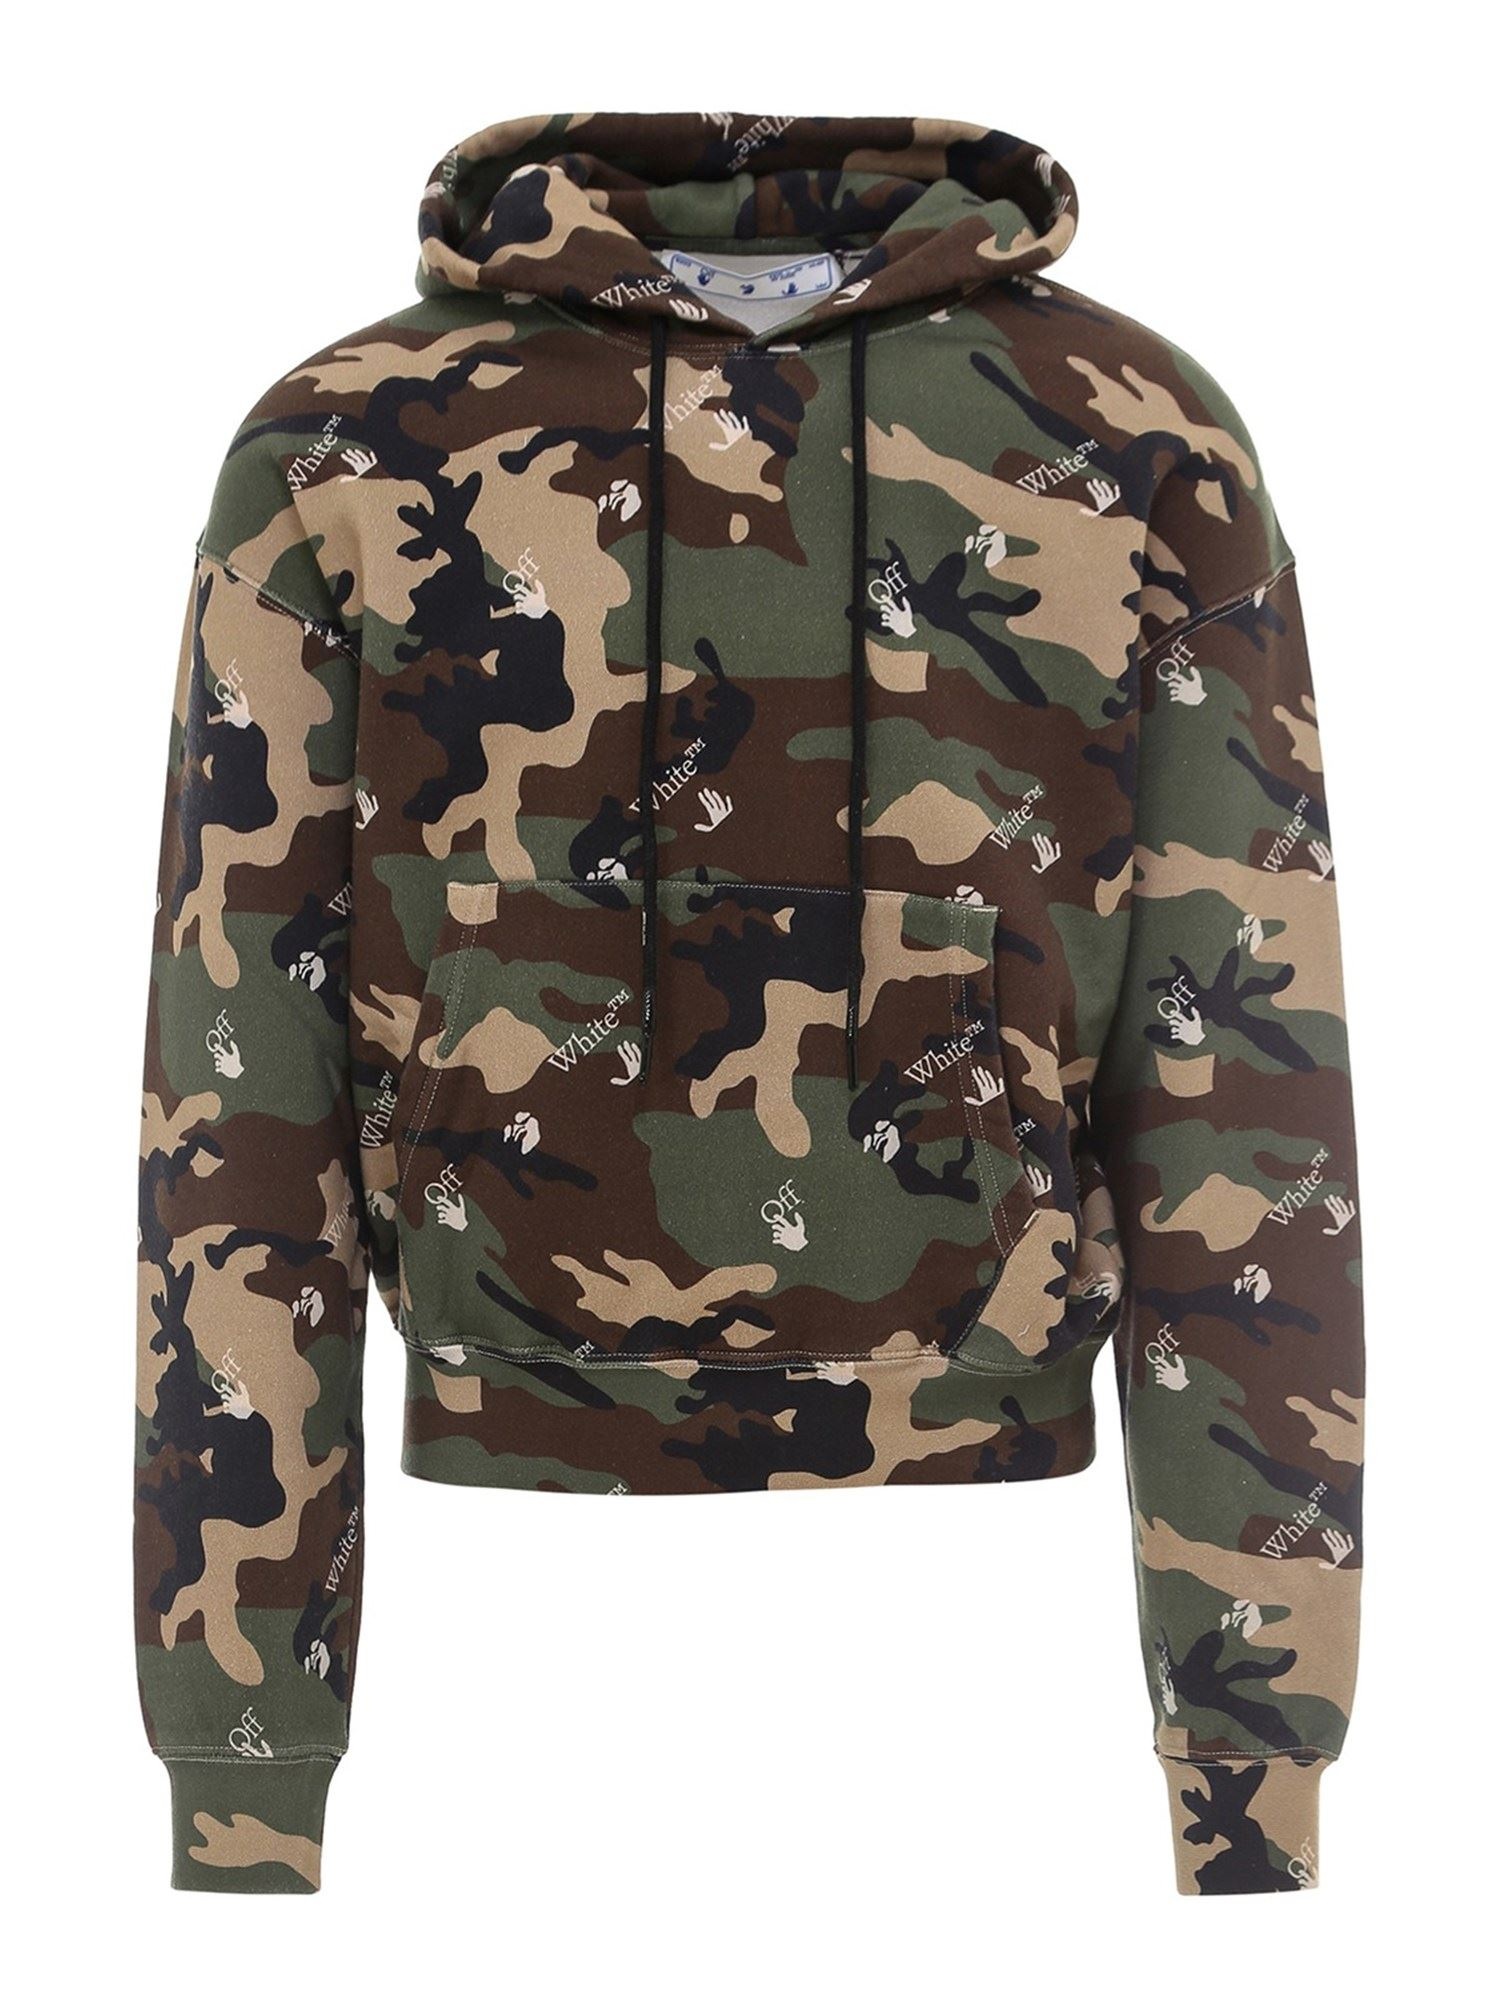 Off-White COTTON CAMOUFLAGE SWEATSHIRT IN GREEN AND BROWN